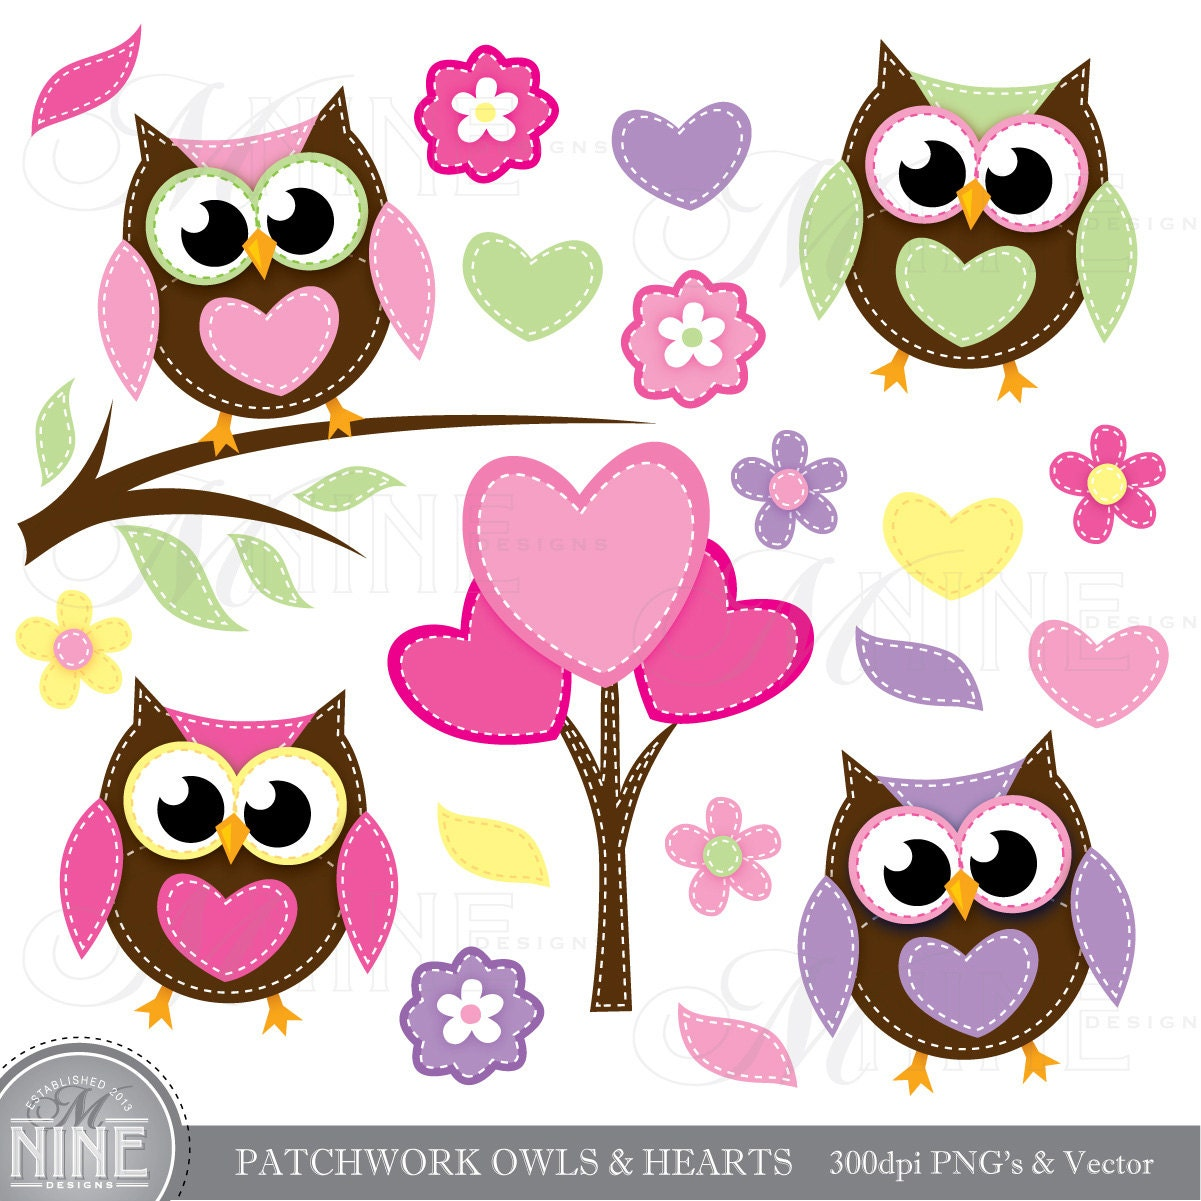 PATCHWORK OWLS & HEARTS Digital Clipart Clip Art Instant